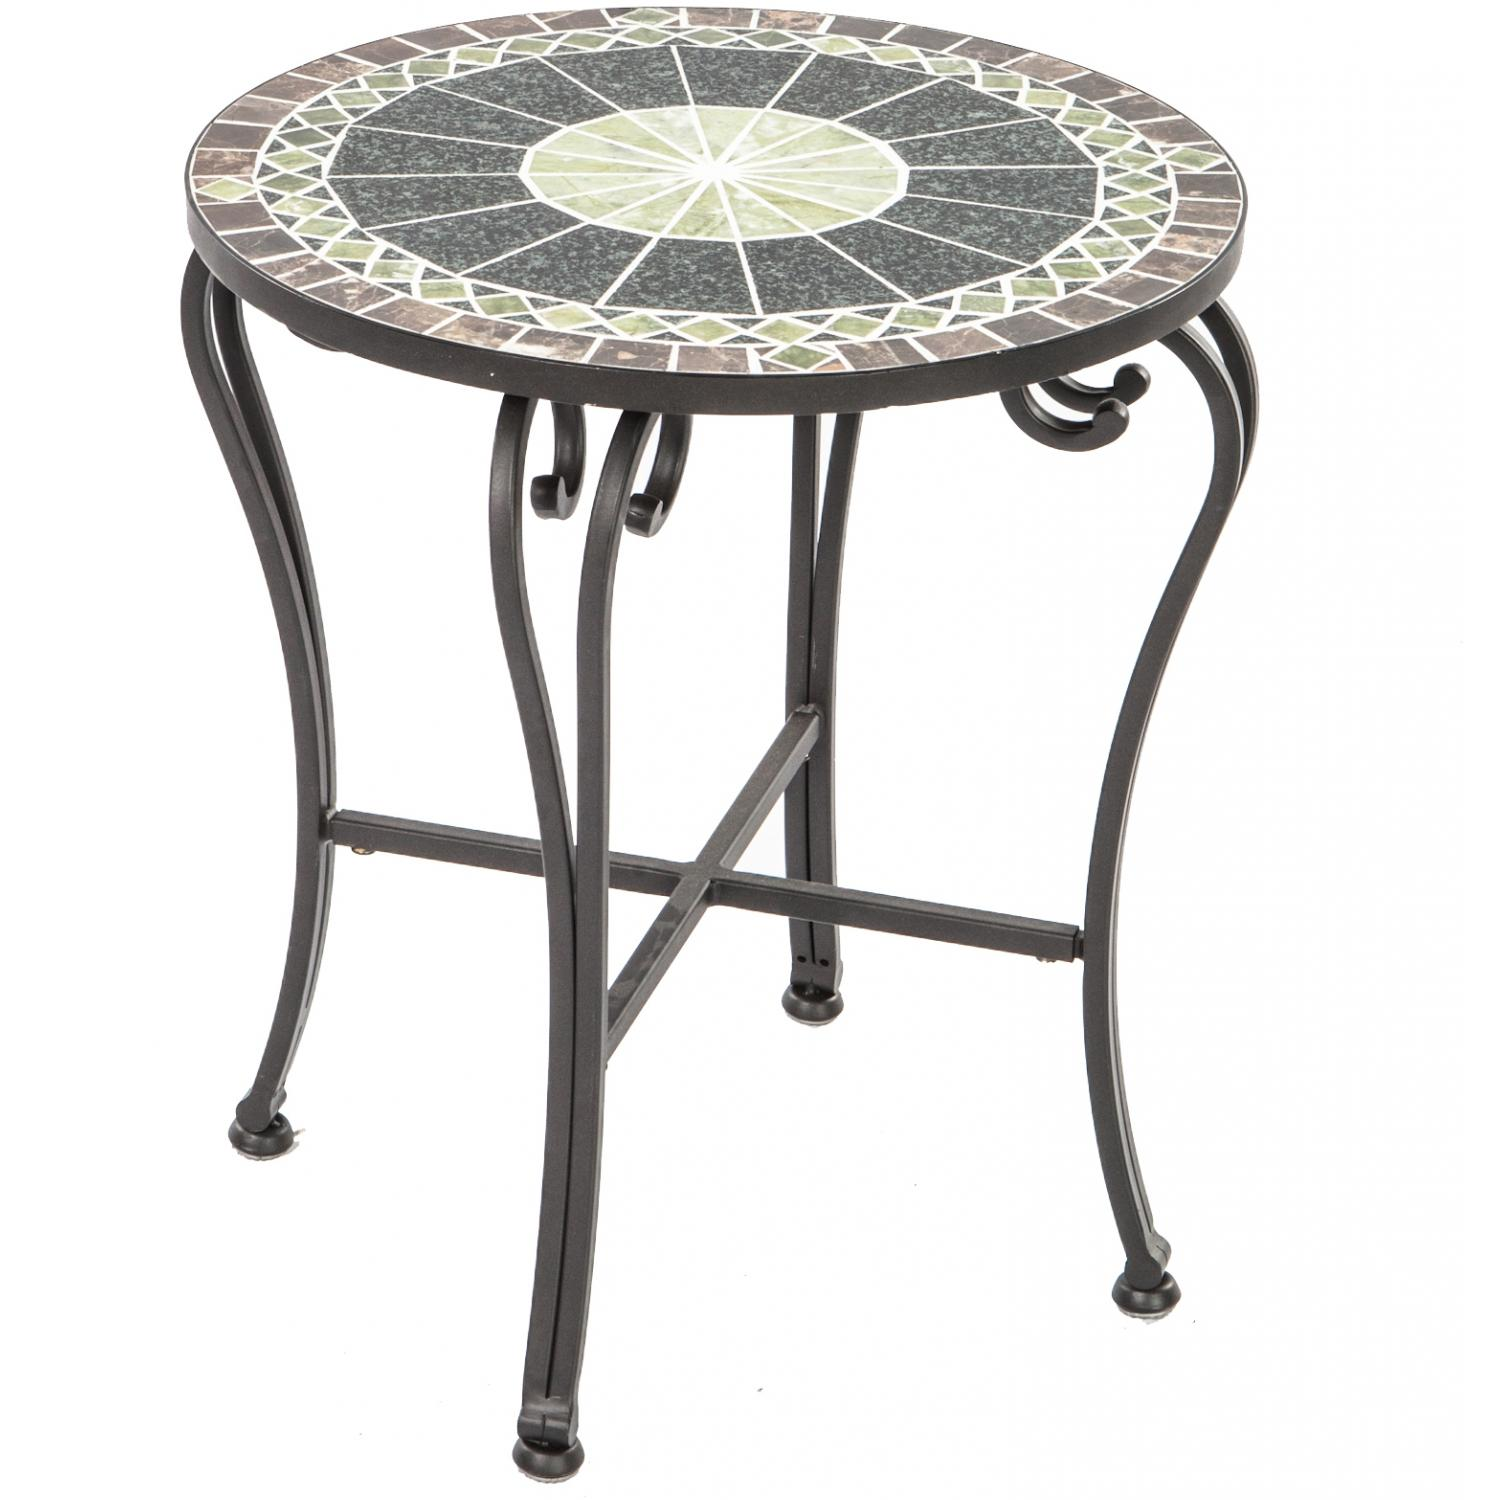 Alfresco Home Ponte Mosaic Side Table at Sears.com